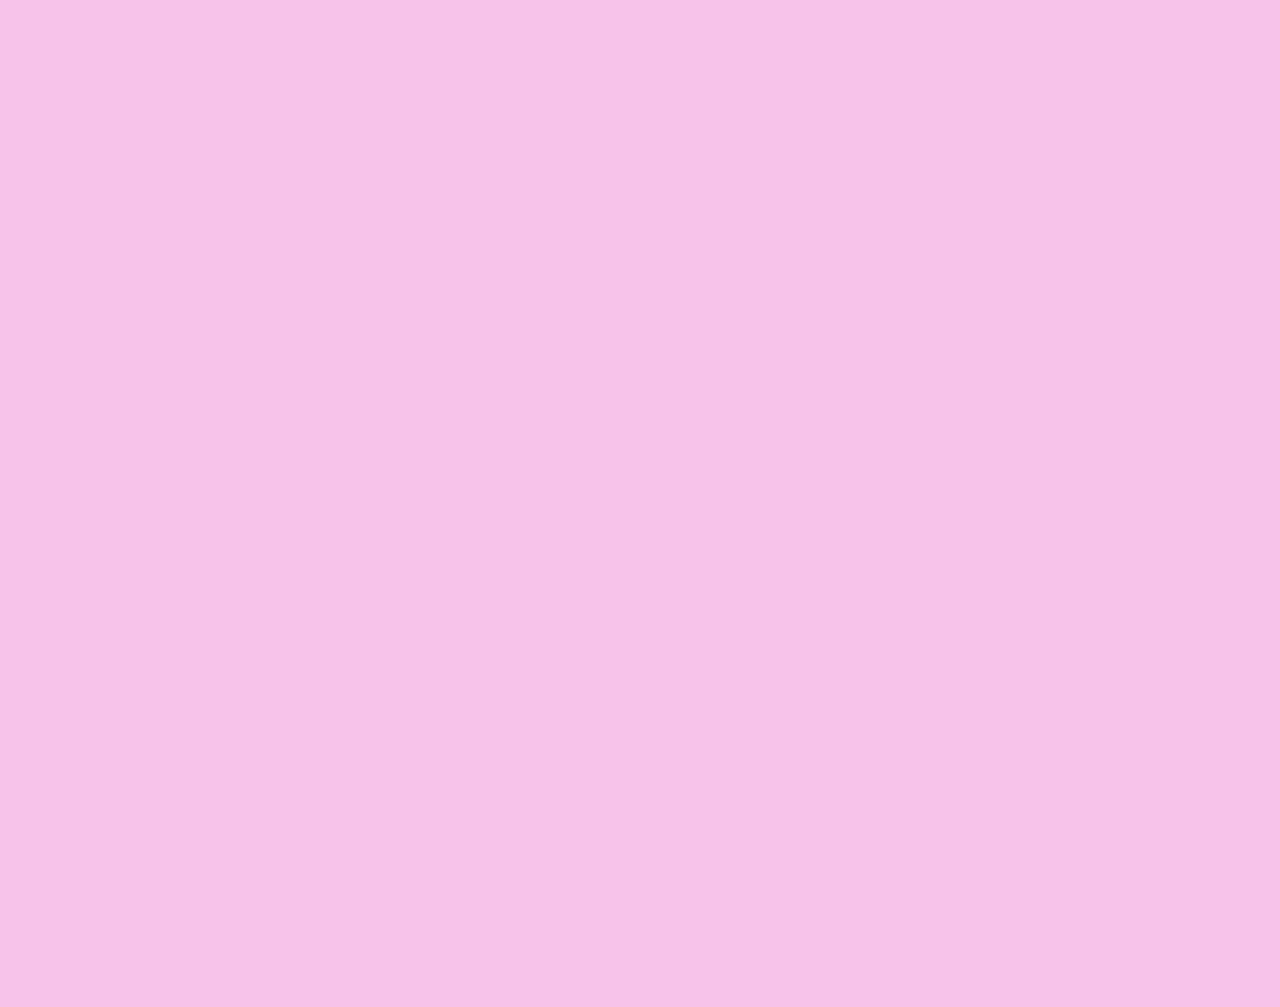 solid pale pink wallpaper images